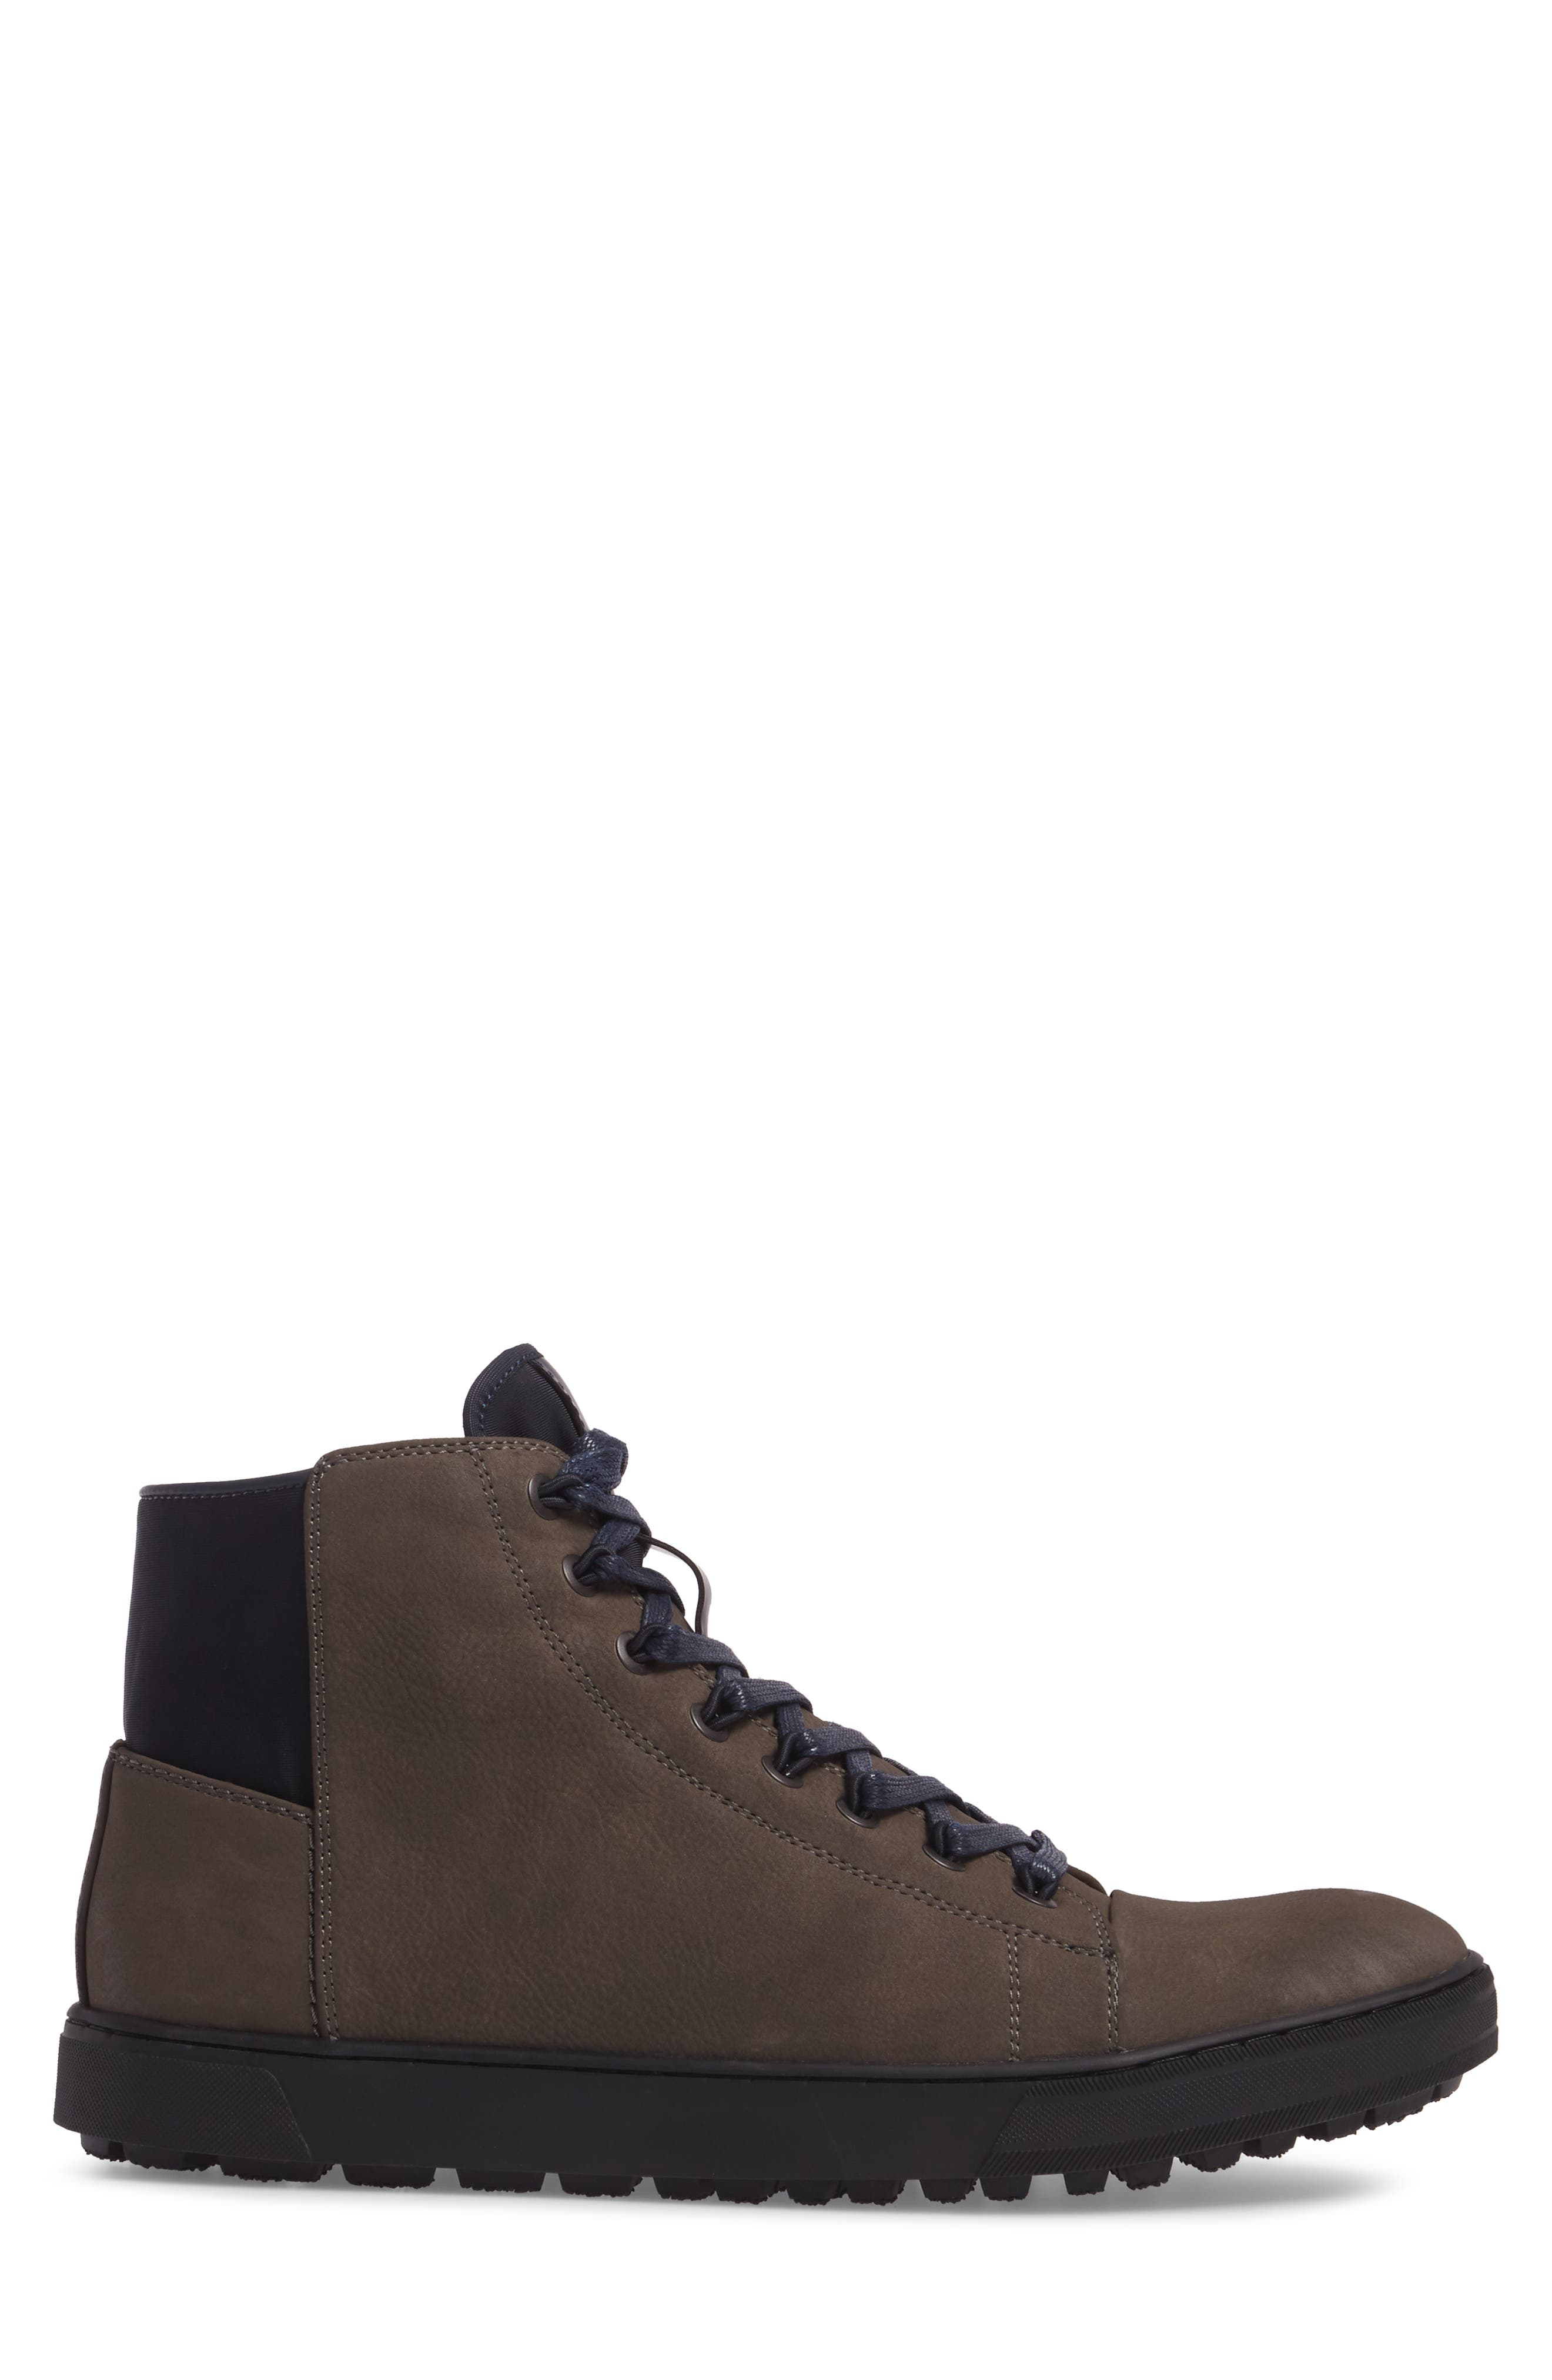 Kenneth Cole Reaction High-Top Sneaker,                             Alternate thumbnail 6, color,